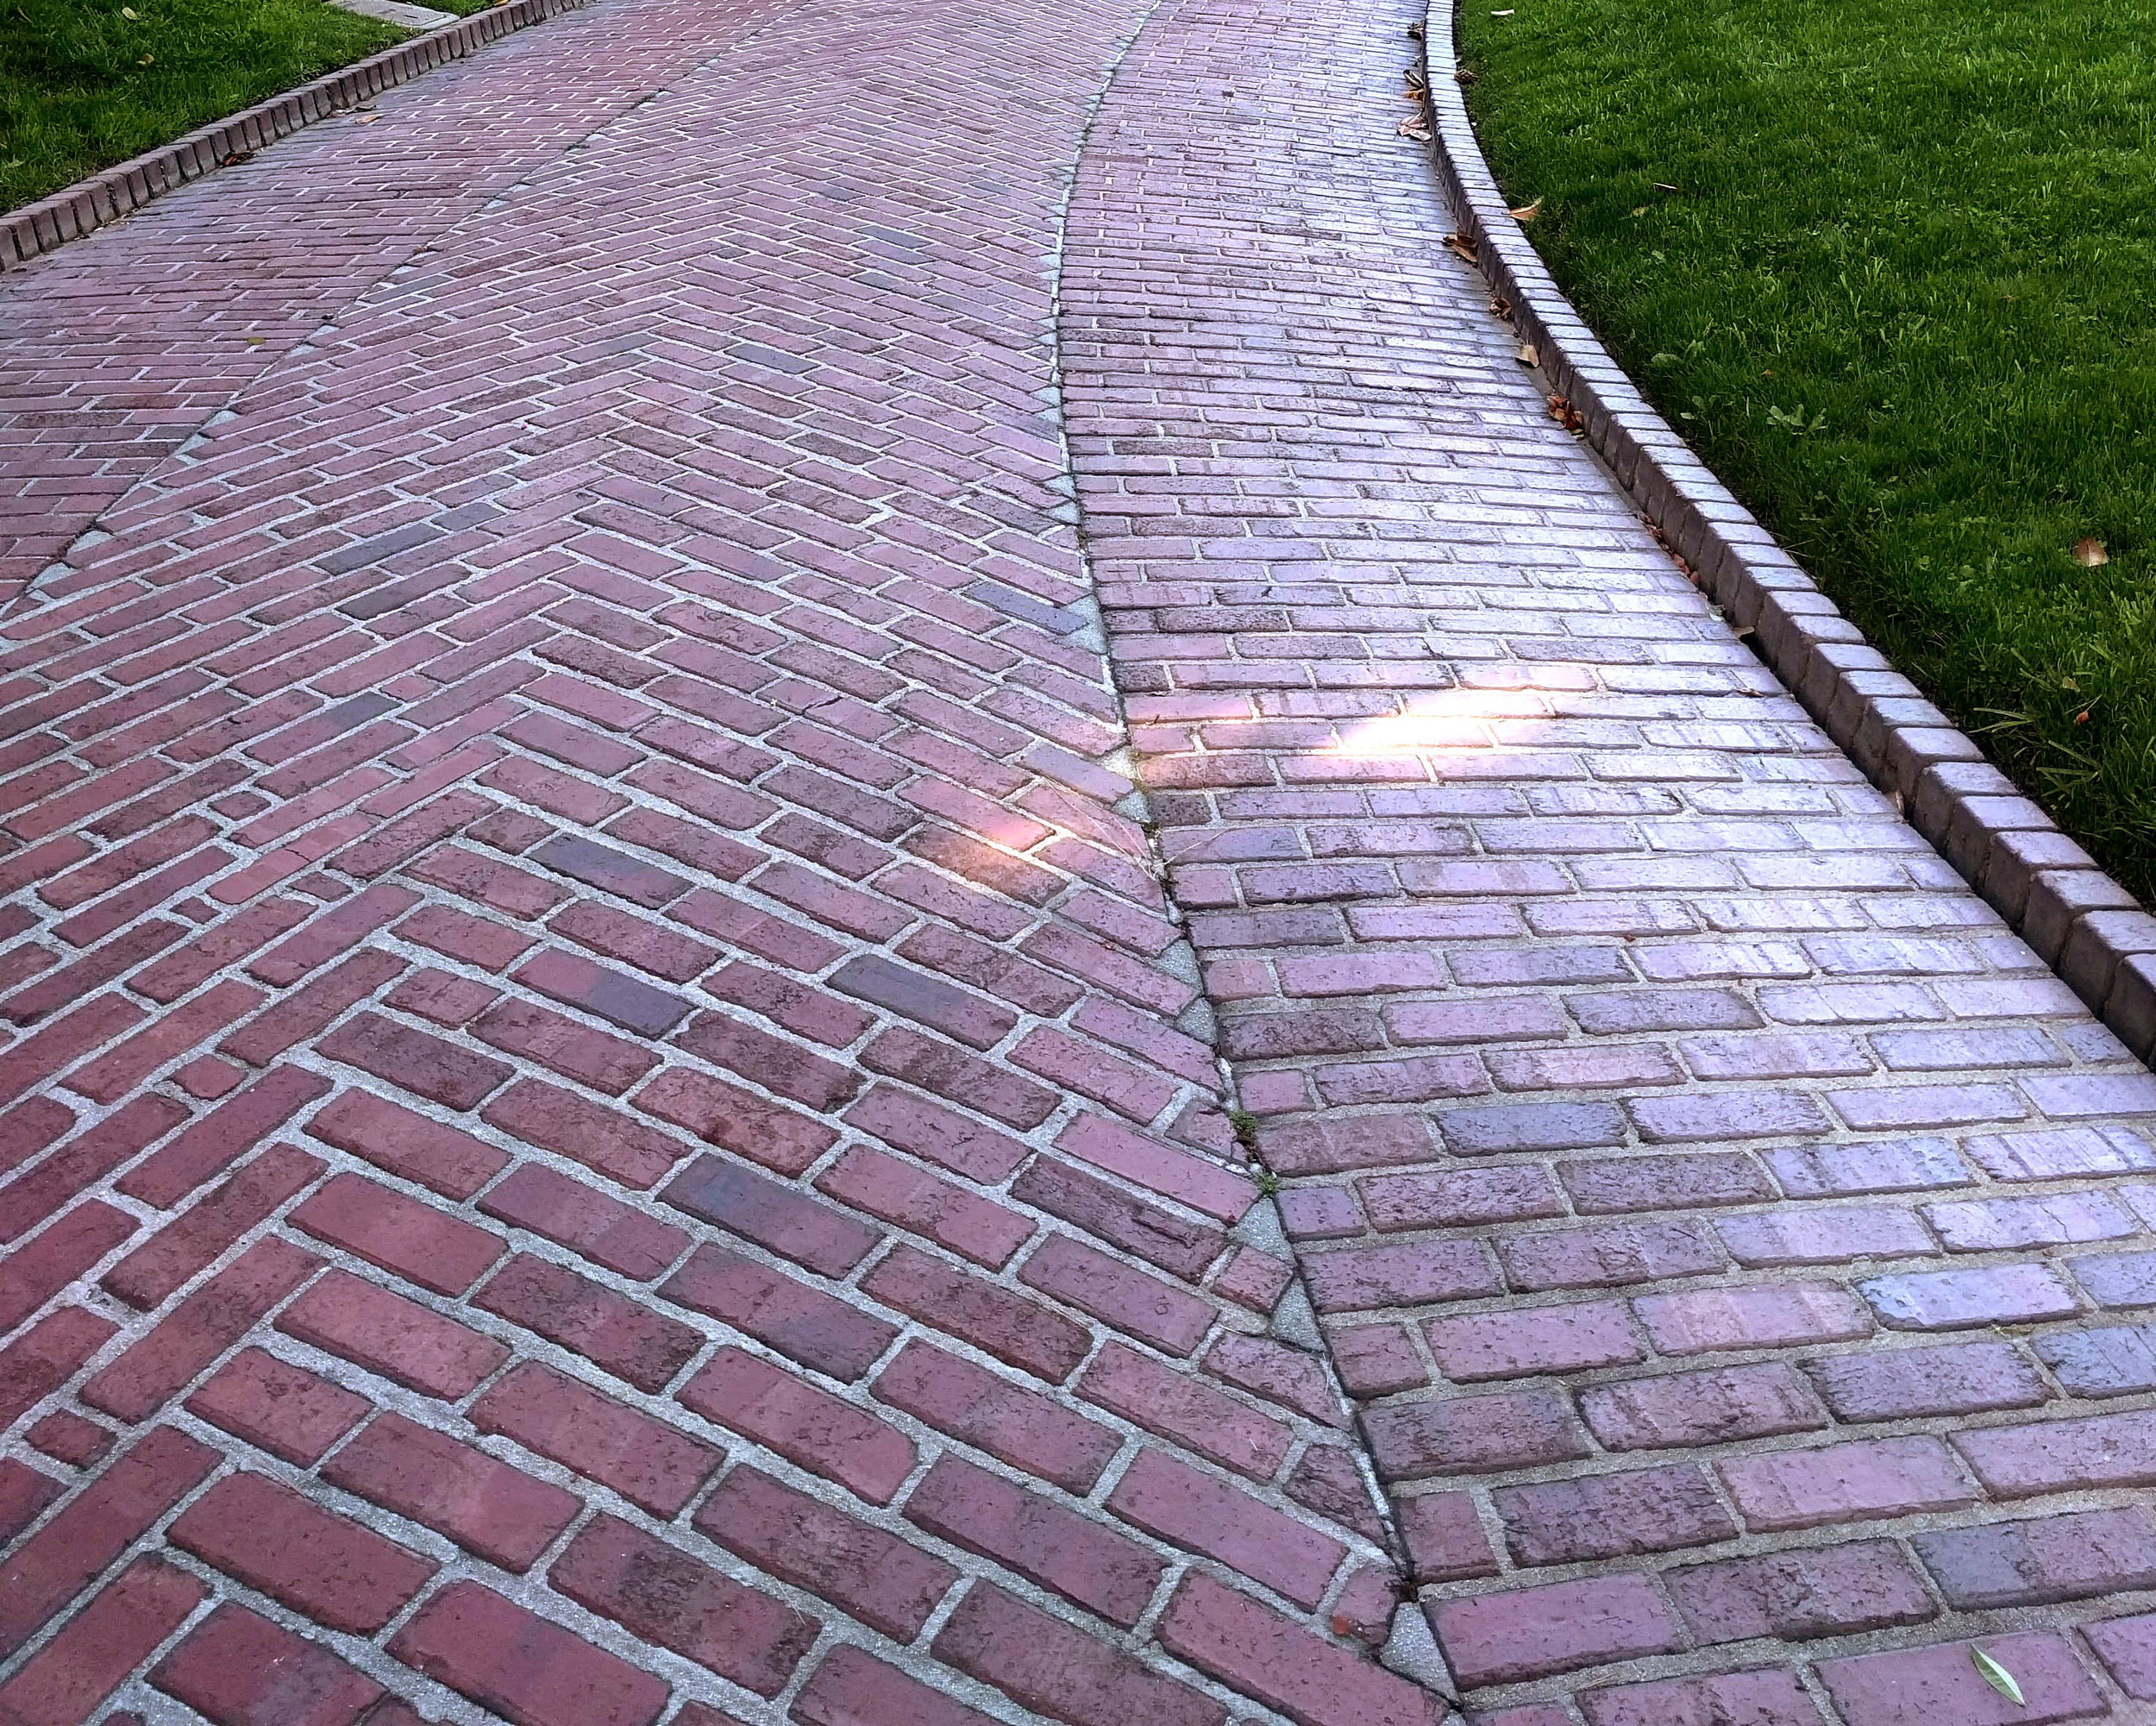 Multiple patterns and an integrated curb feature in this historic driveway at the  Gamble House  in California.